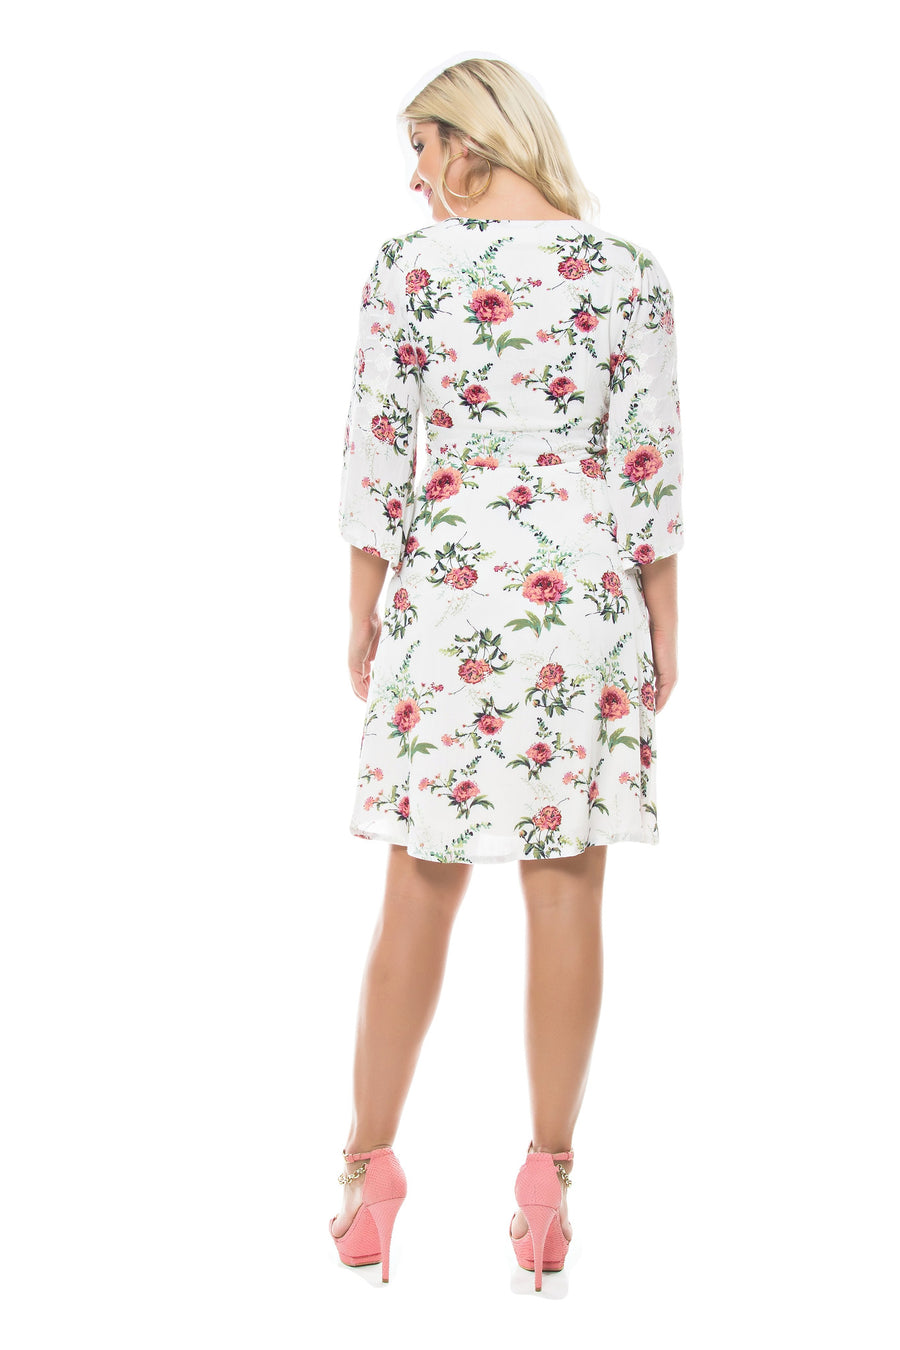 Floral 3/4 Sleeve Dress